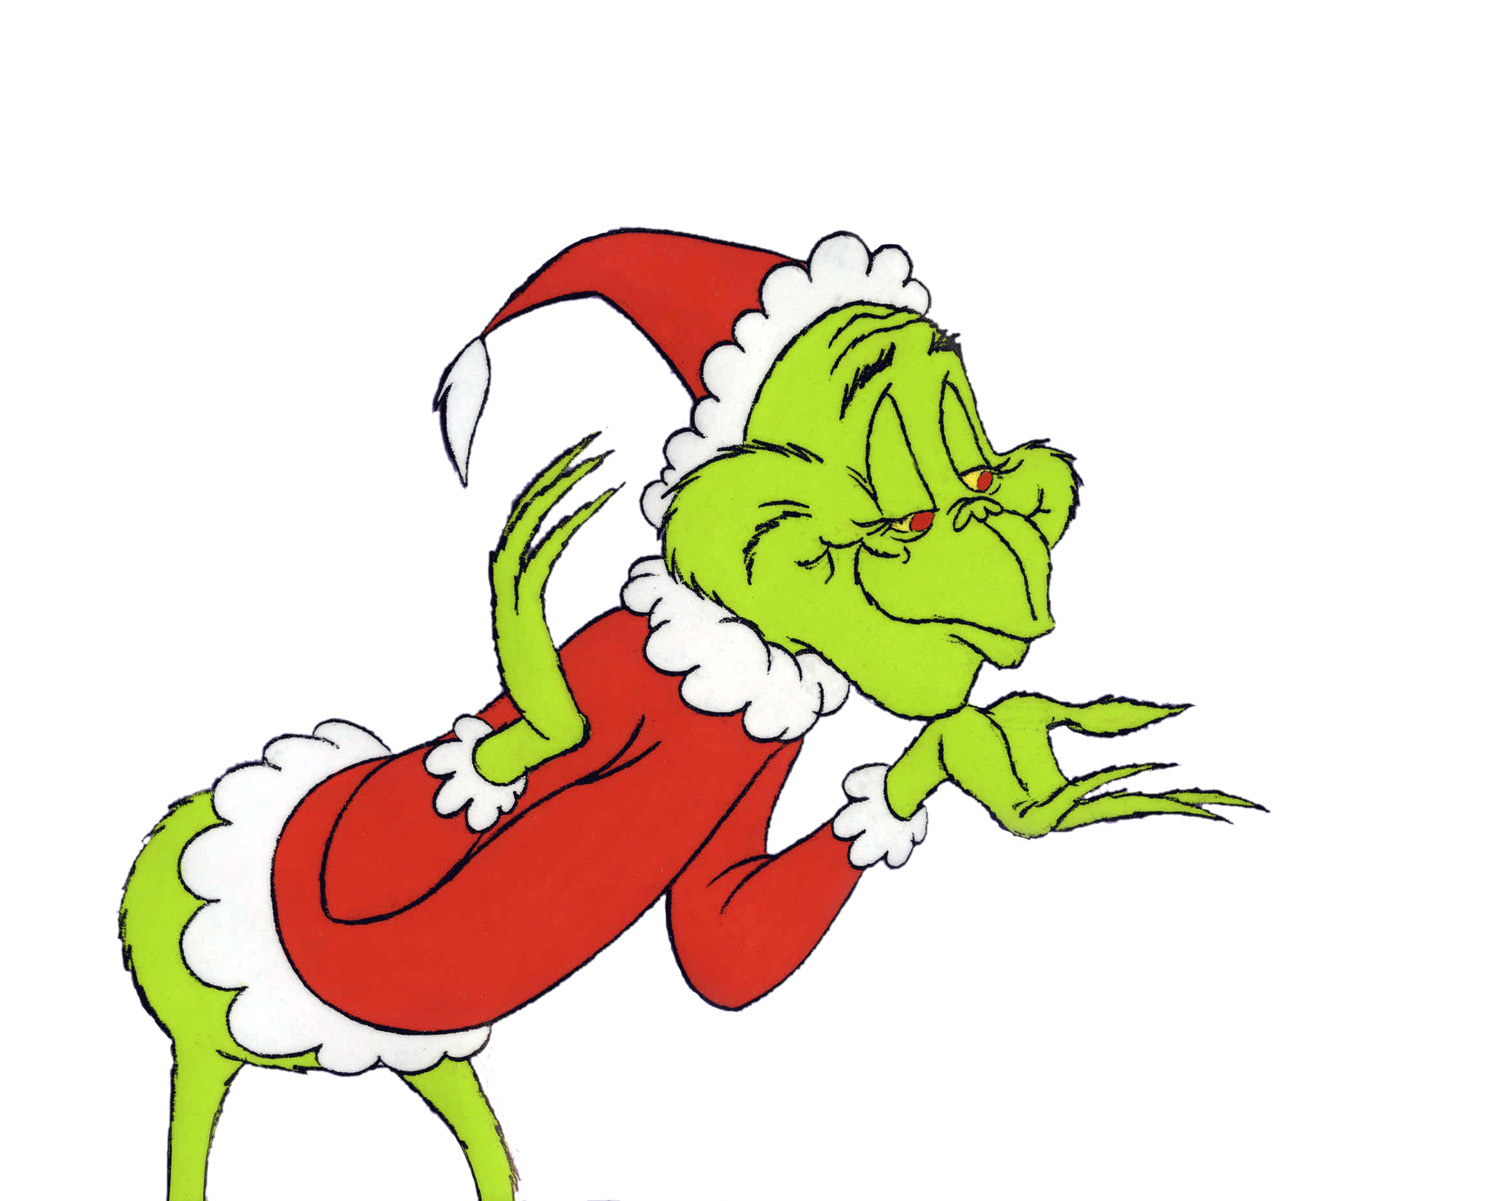 Pix For u0026gt; The Grinch Who Stole Ch-Pix For u0026gt; The Grinch Who Stole Christmas Book Characters-14